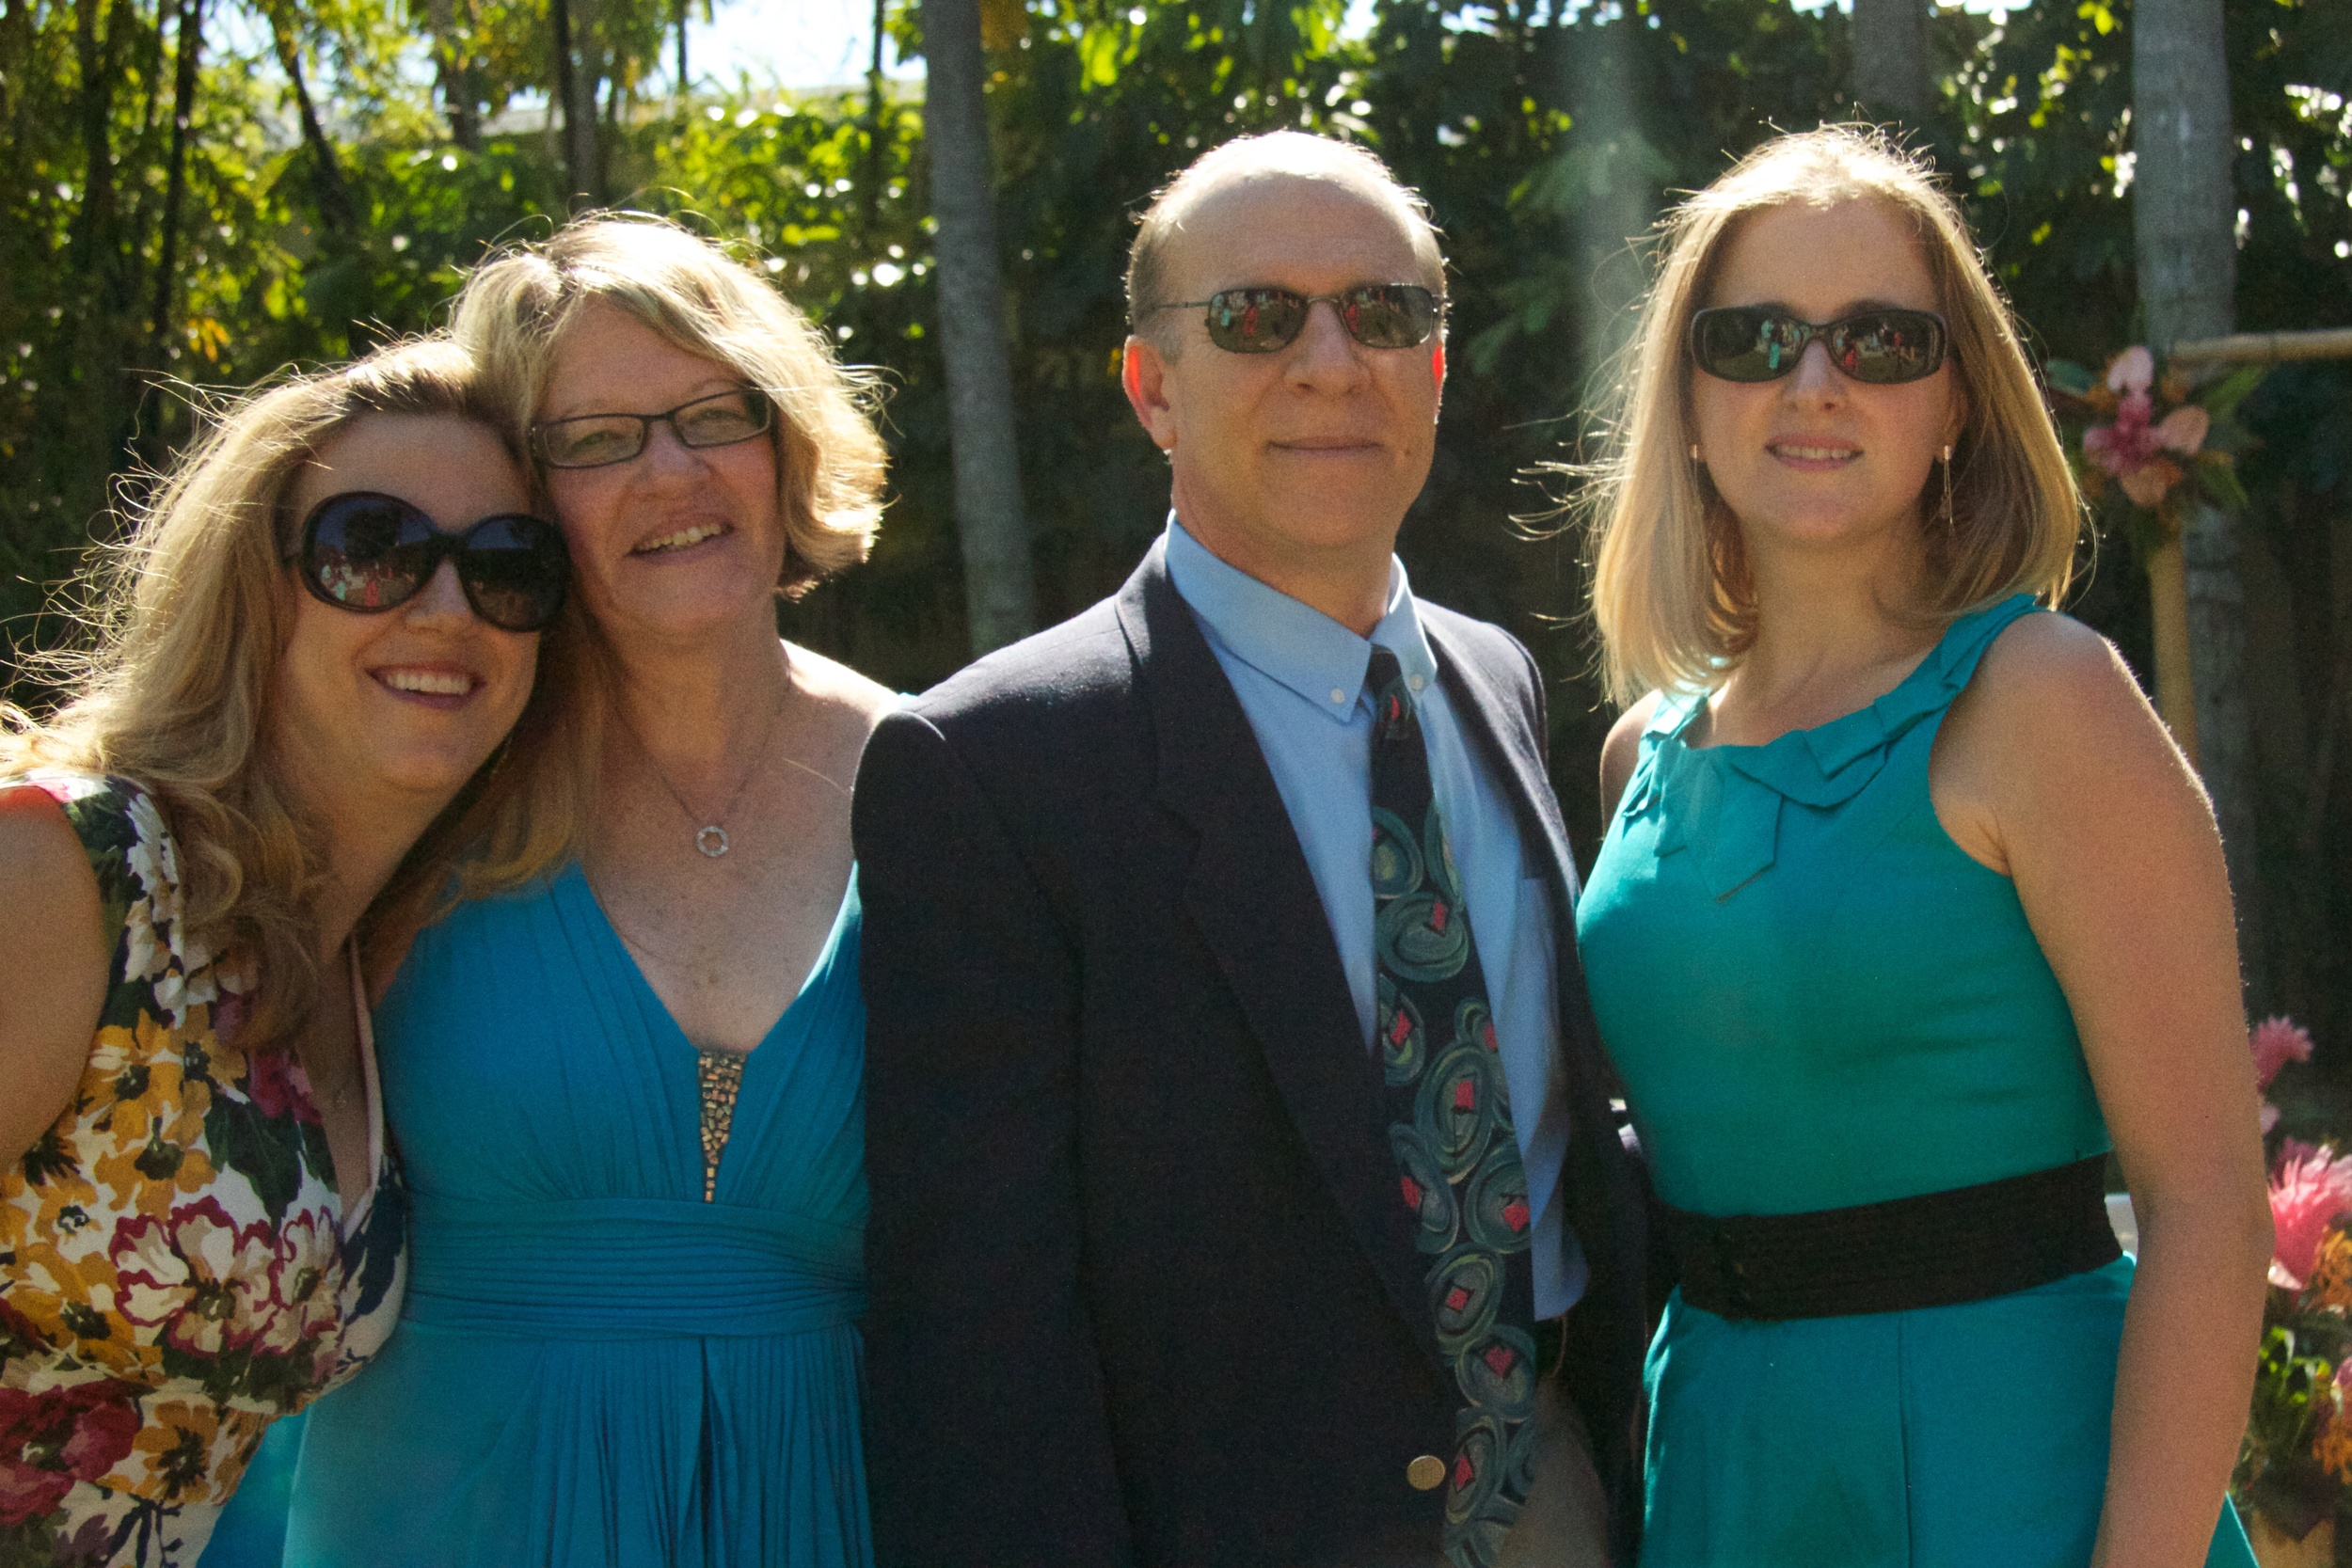 Three of the original stitchy four: L-R Alli, Esther, Esther's husband Eddie and Karen celebrate Lara and Matt in sunny, south Florida.